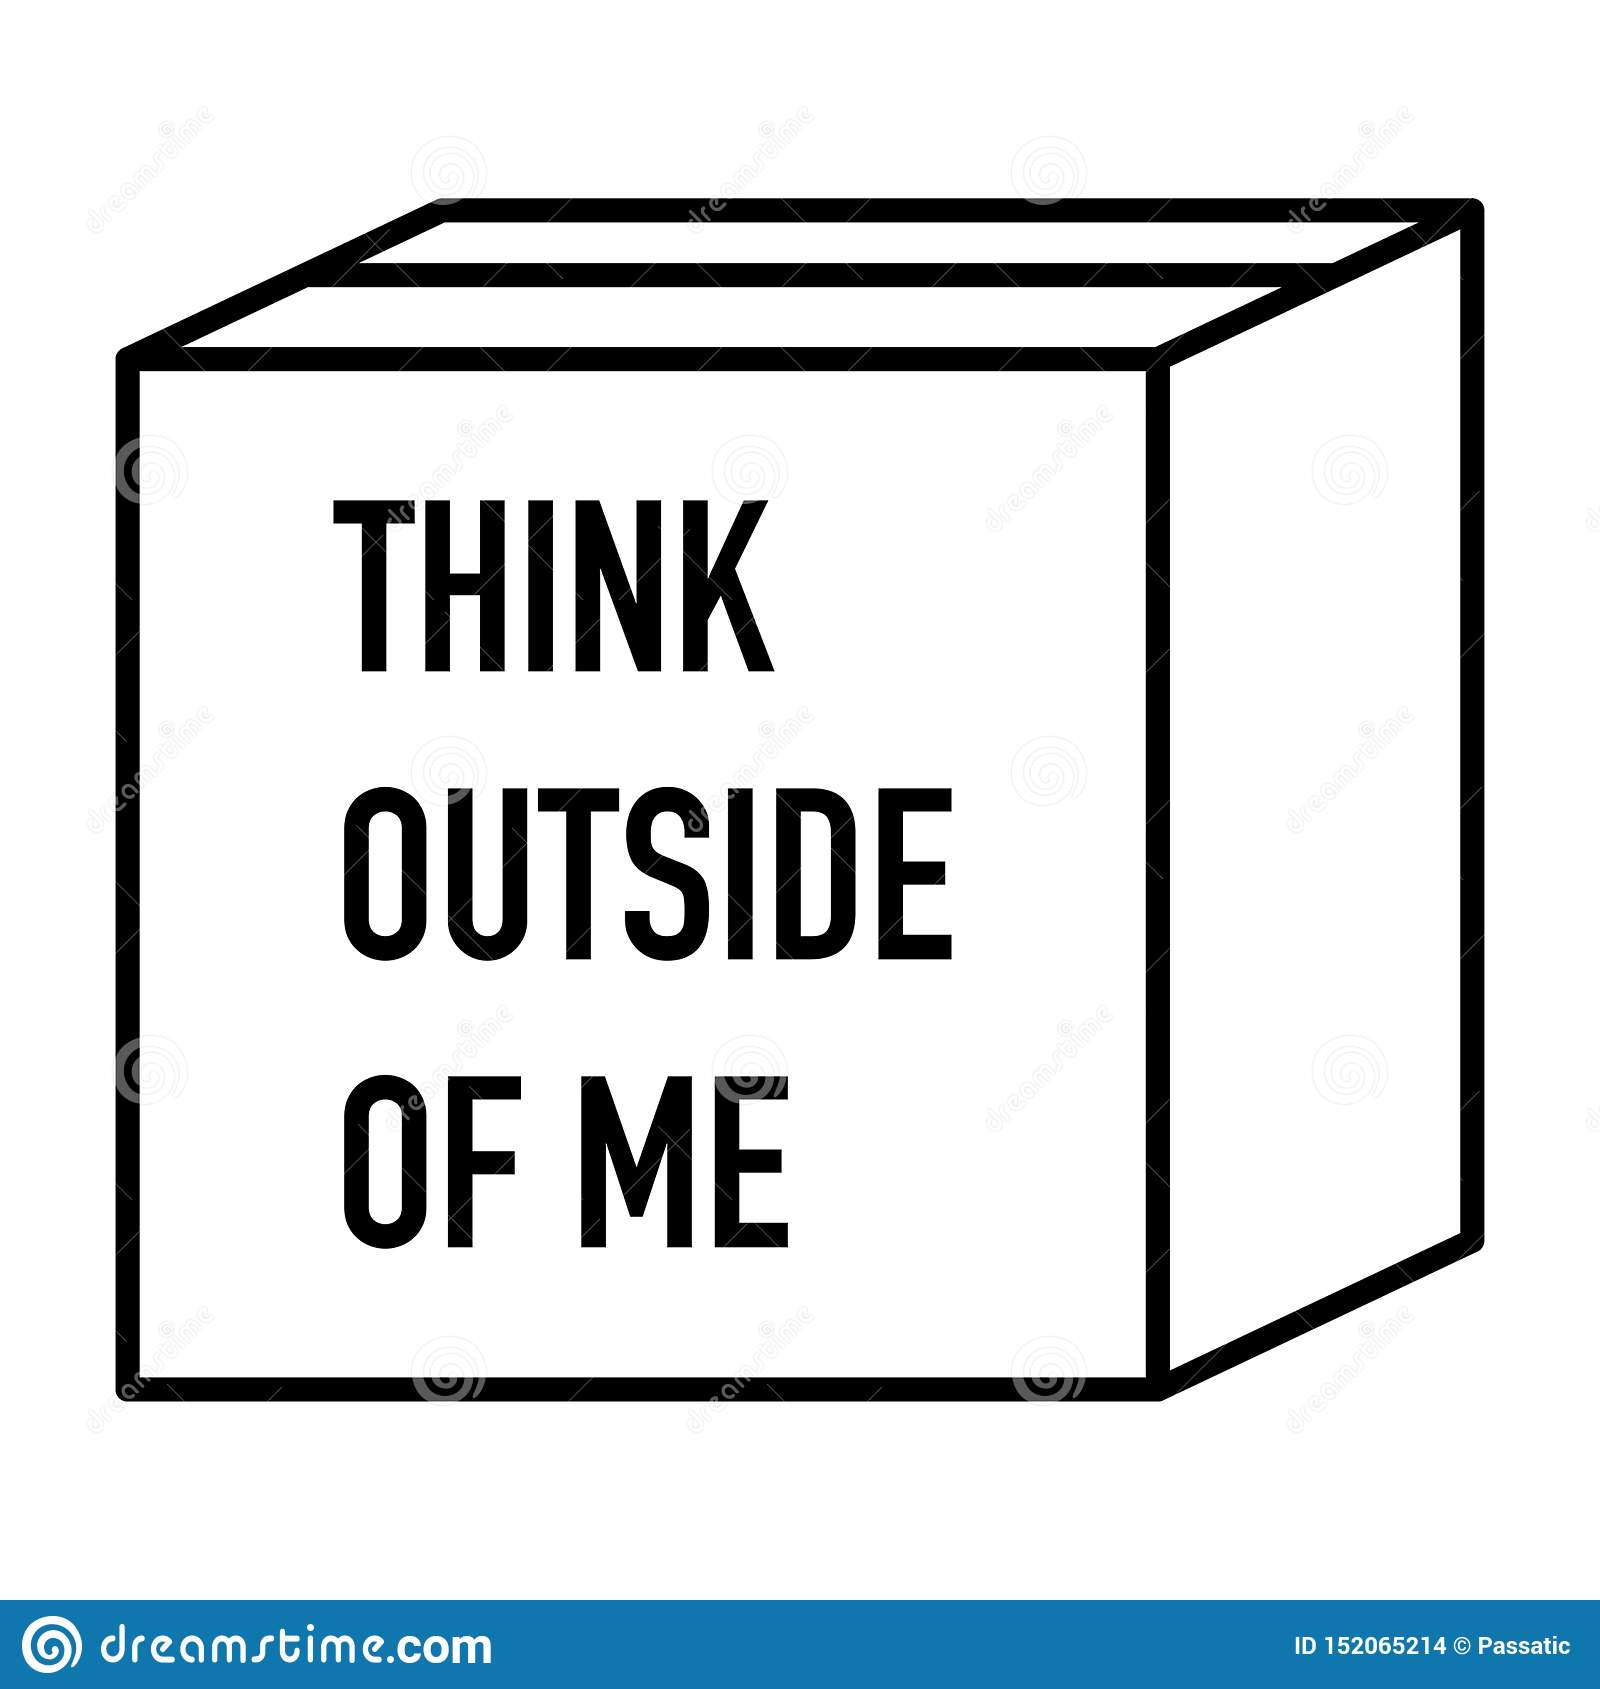 Think outside the box very creative idea